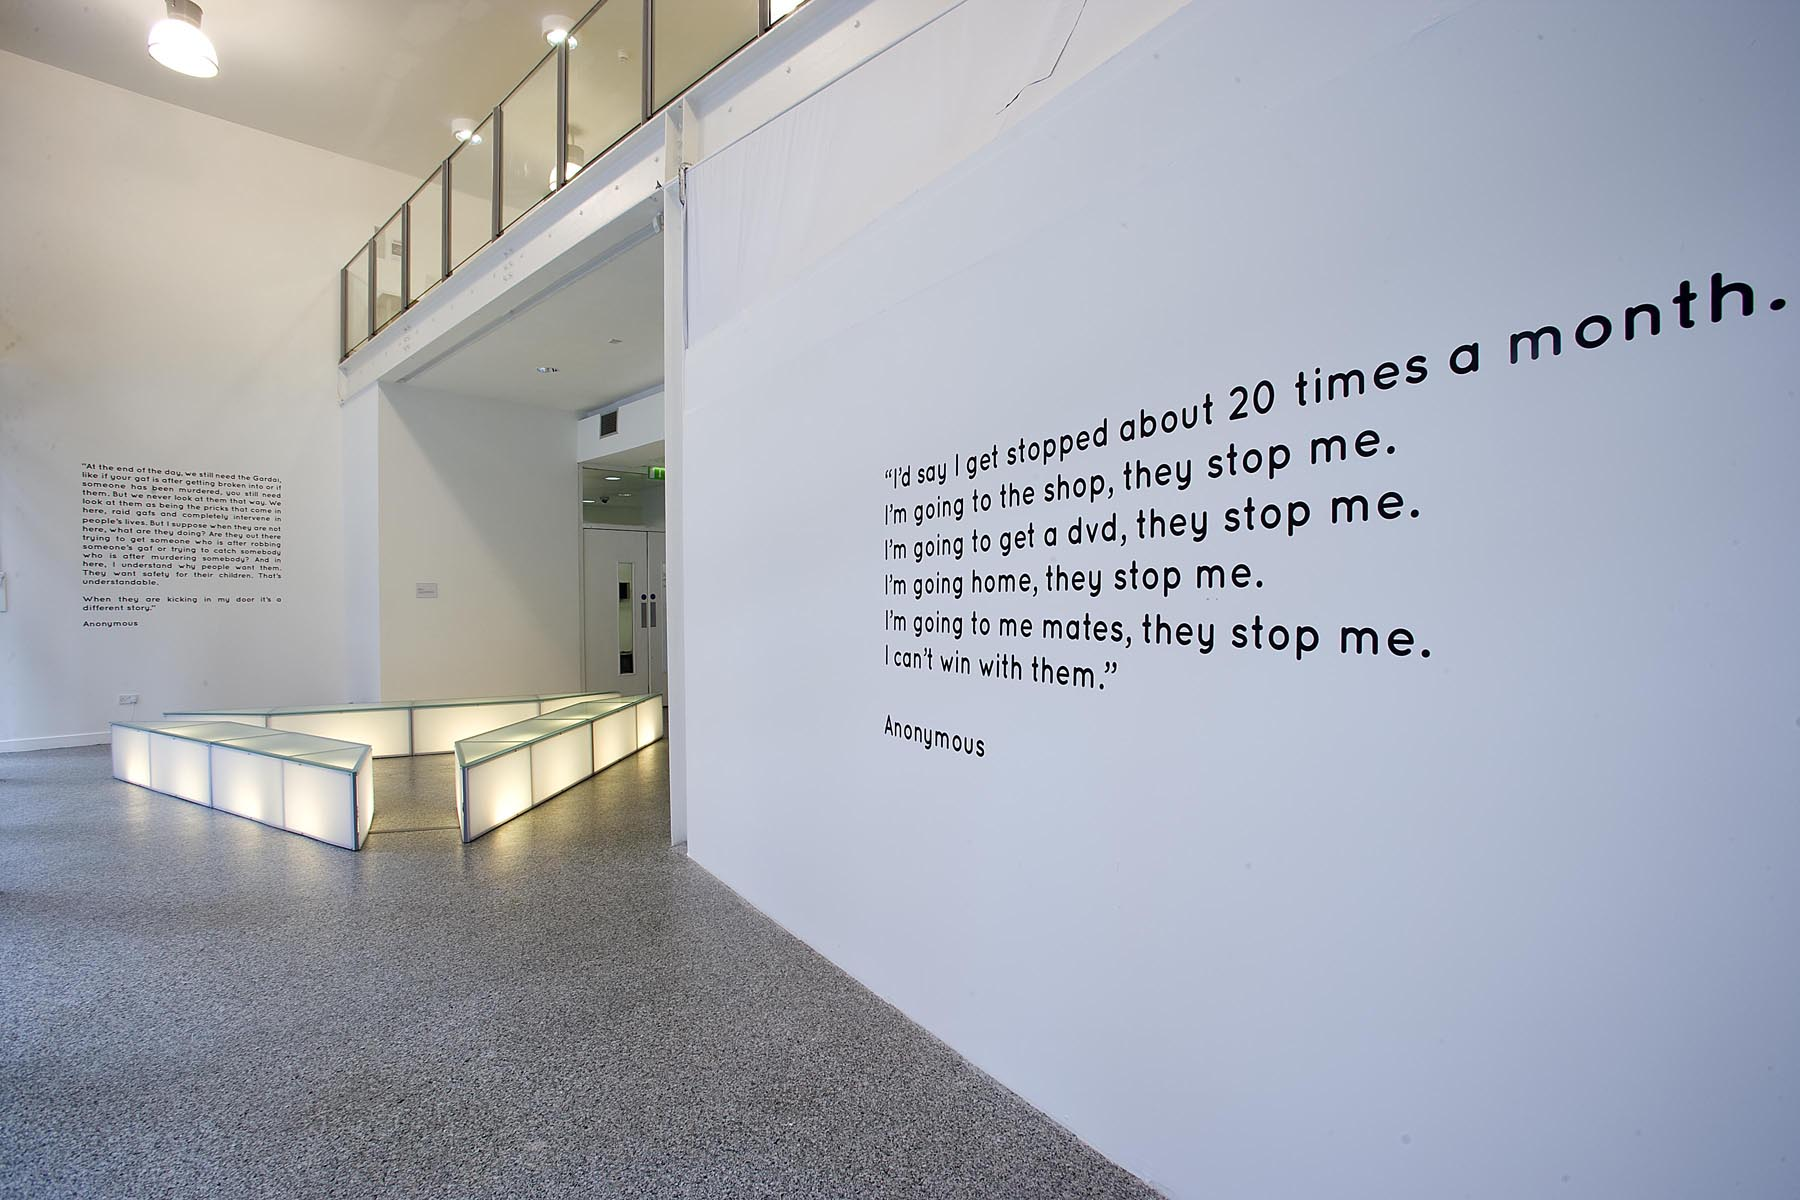 [ Image 2. Policing Dialogues. The LAB Gallery Dublin, 2010. © Michael Durand]